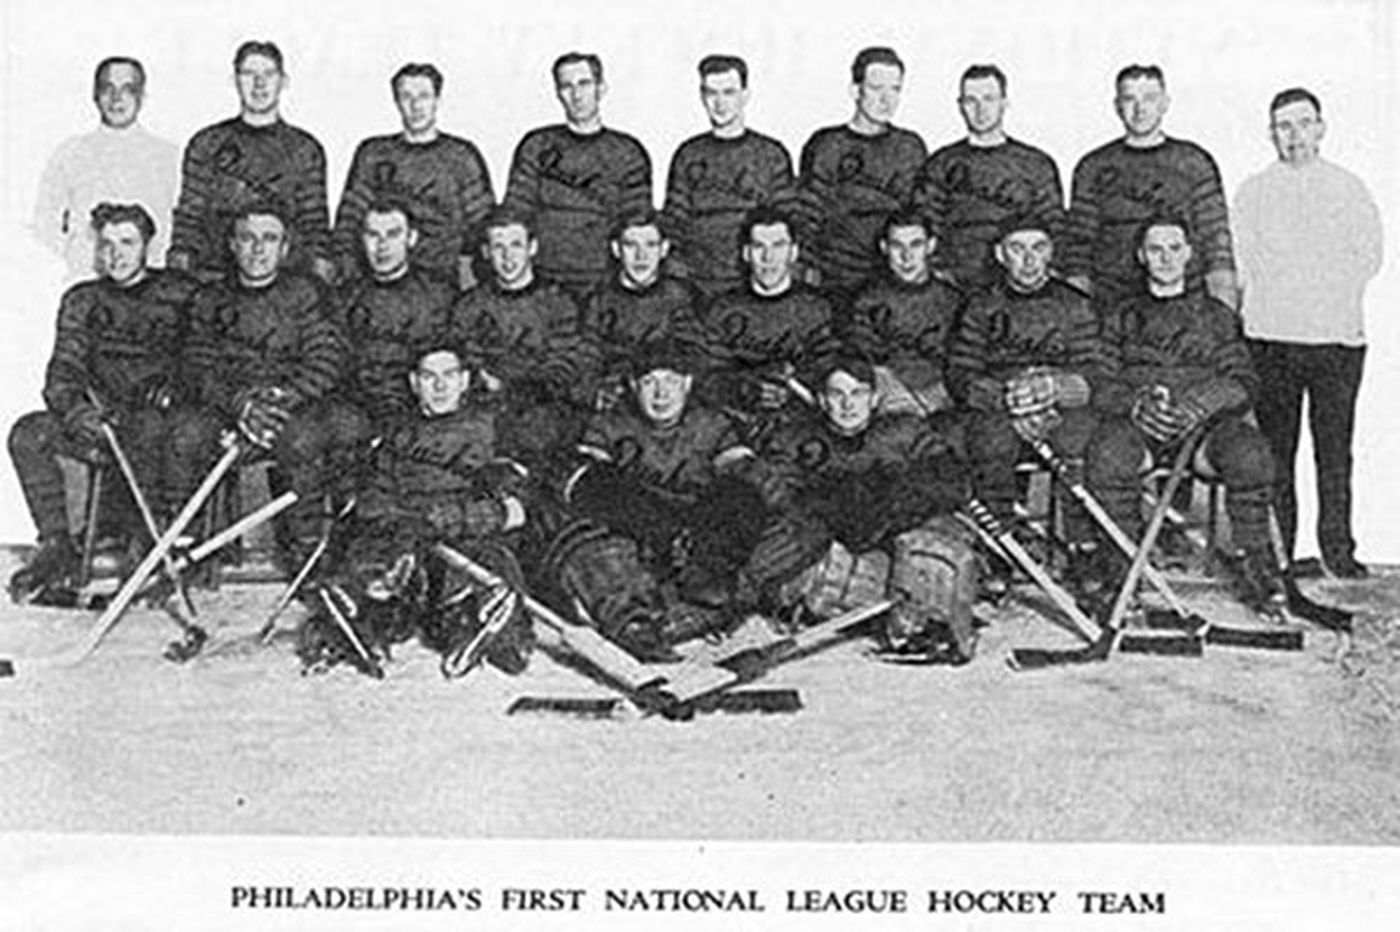 The short, sad history of Philly's first NHL team